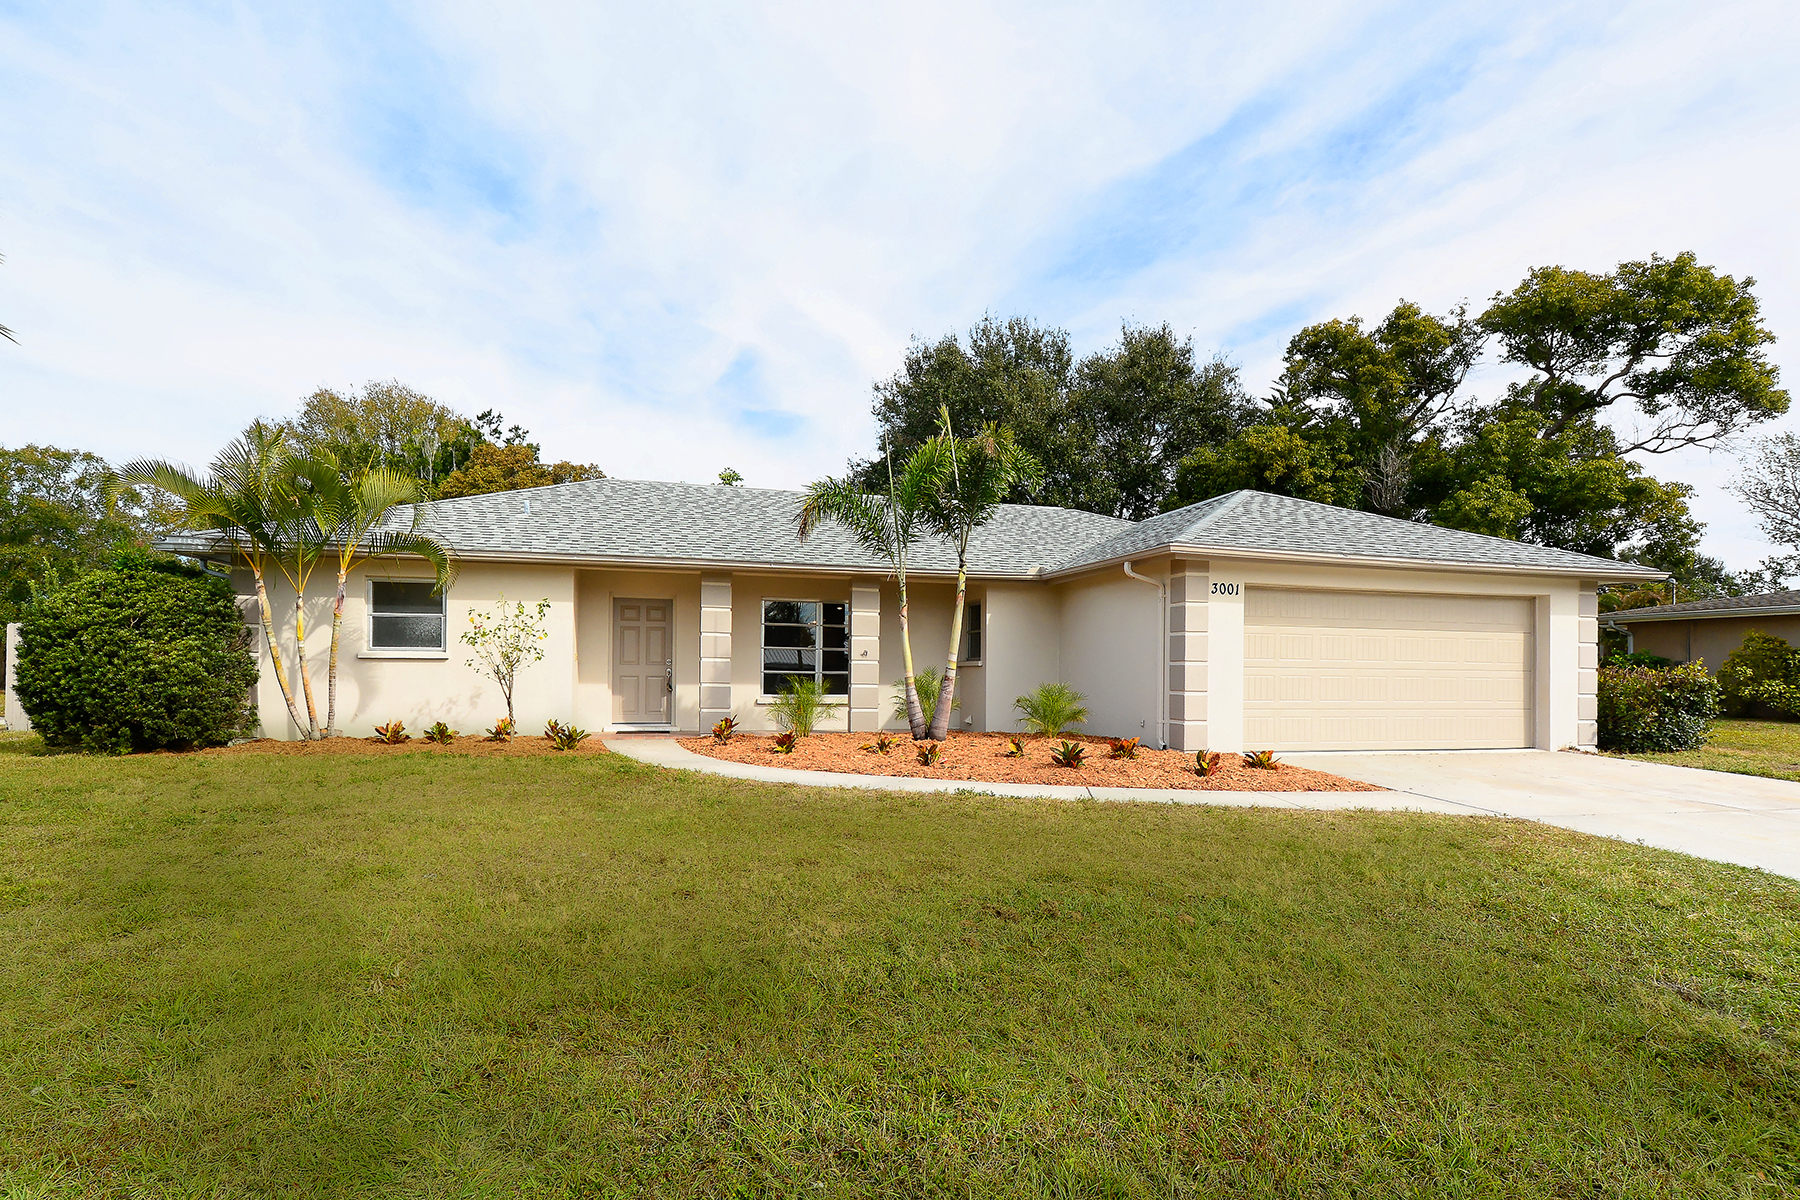 Single Family Home for Sale at SOUTH GATE 3001 Jennings Dr, Sarasota, Florida 34239 United States